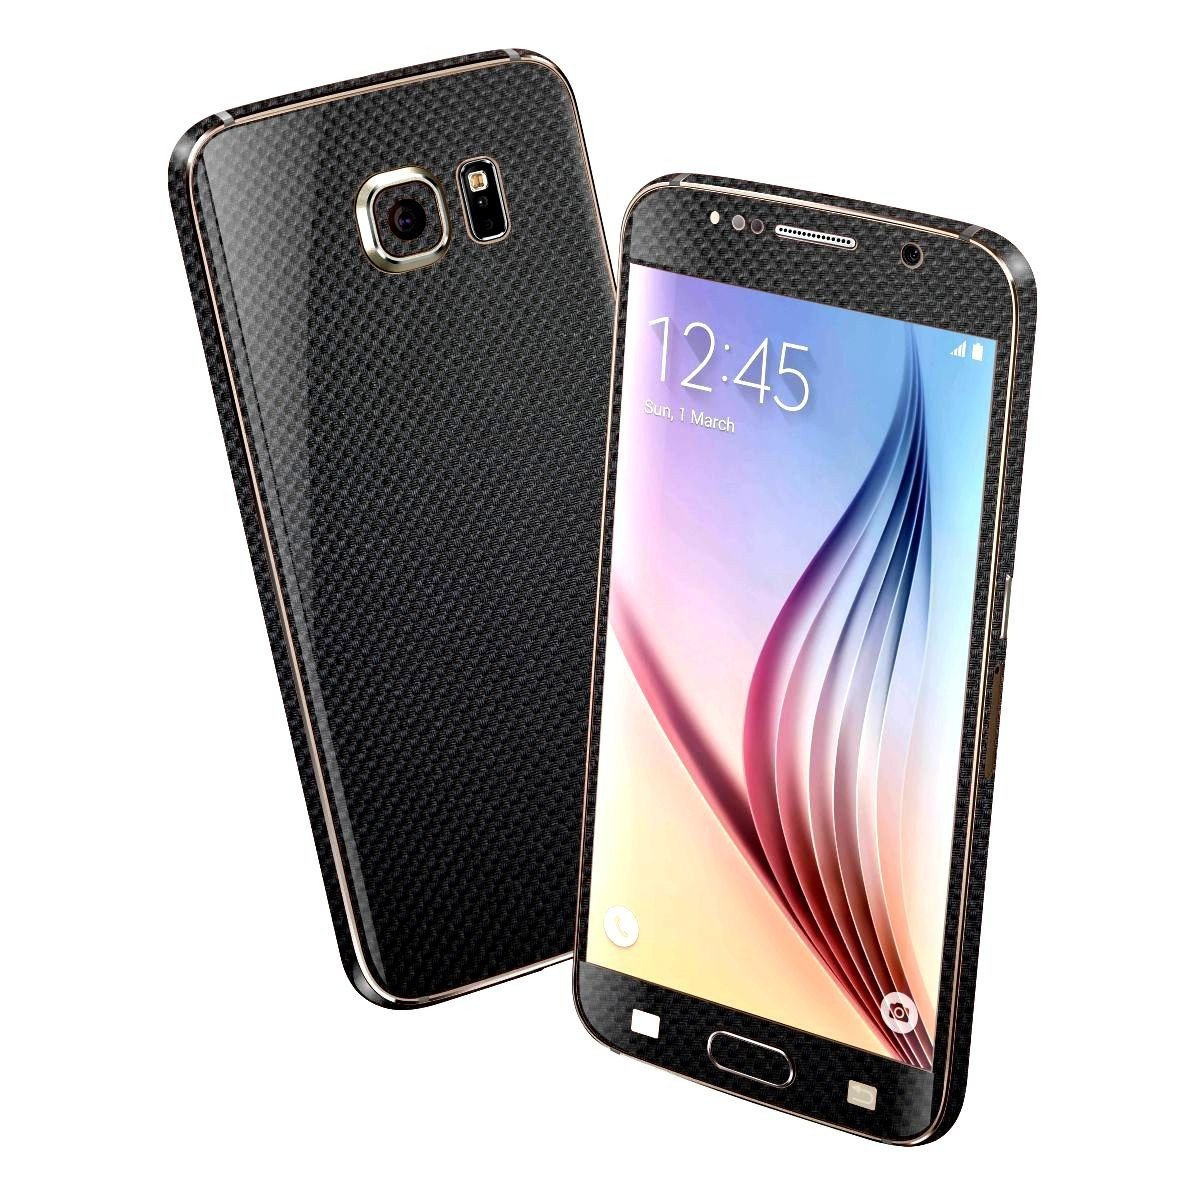 Samsung Galaxy S6 MICRO 3D CARBON Fibre BLACK Skin Wrap Sticker Cover Decal Protector by EasySkinz